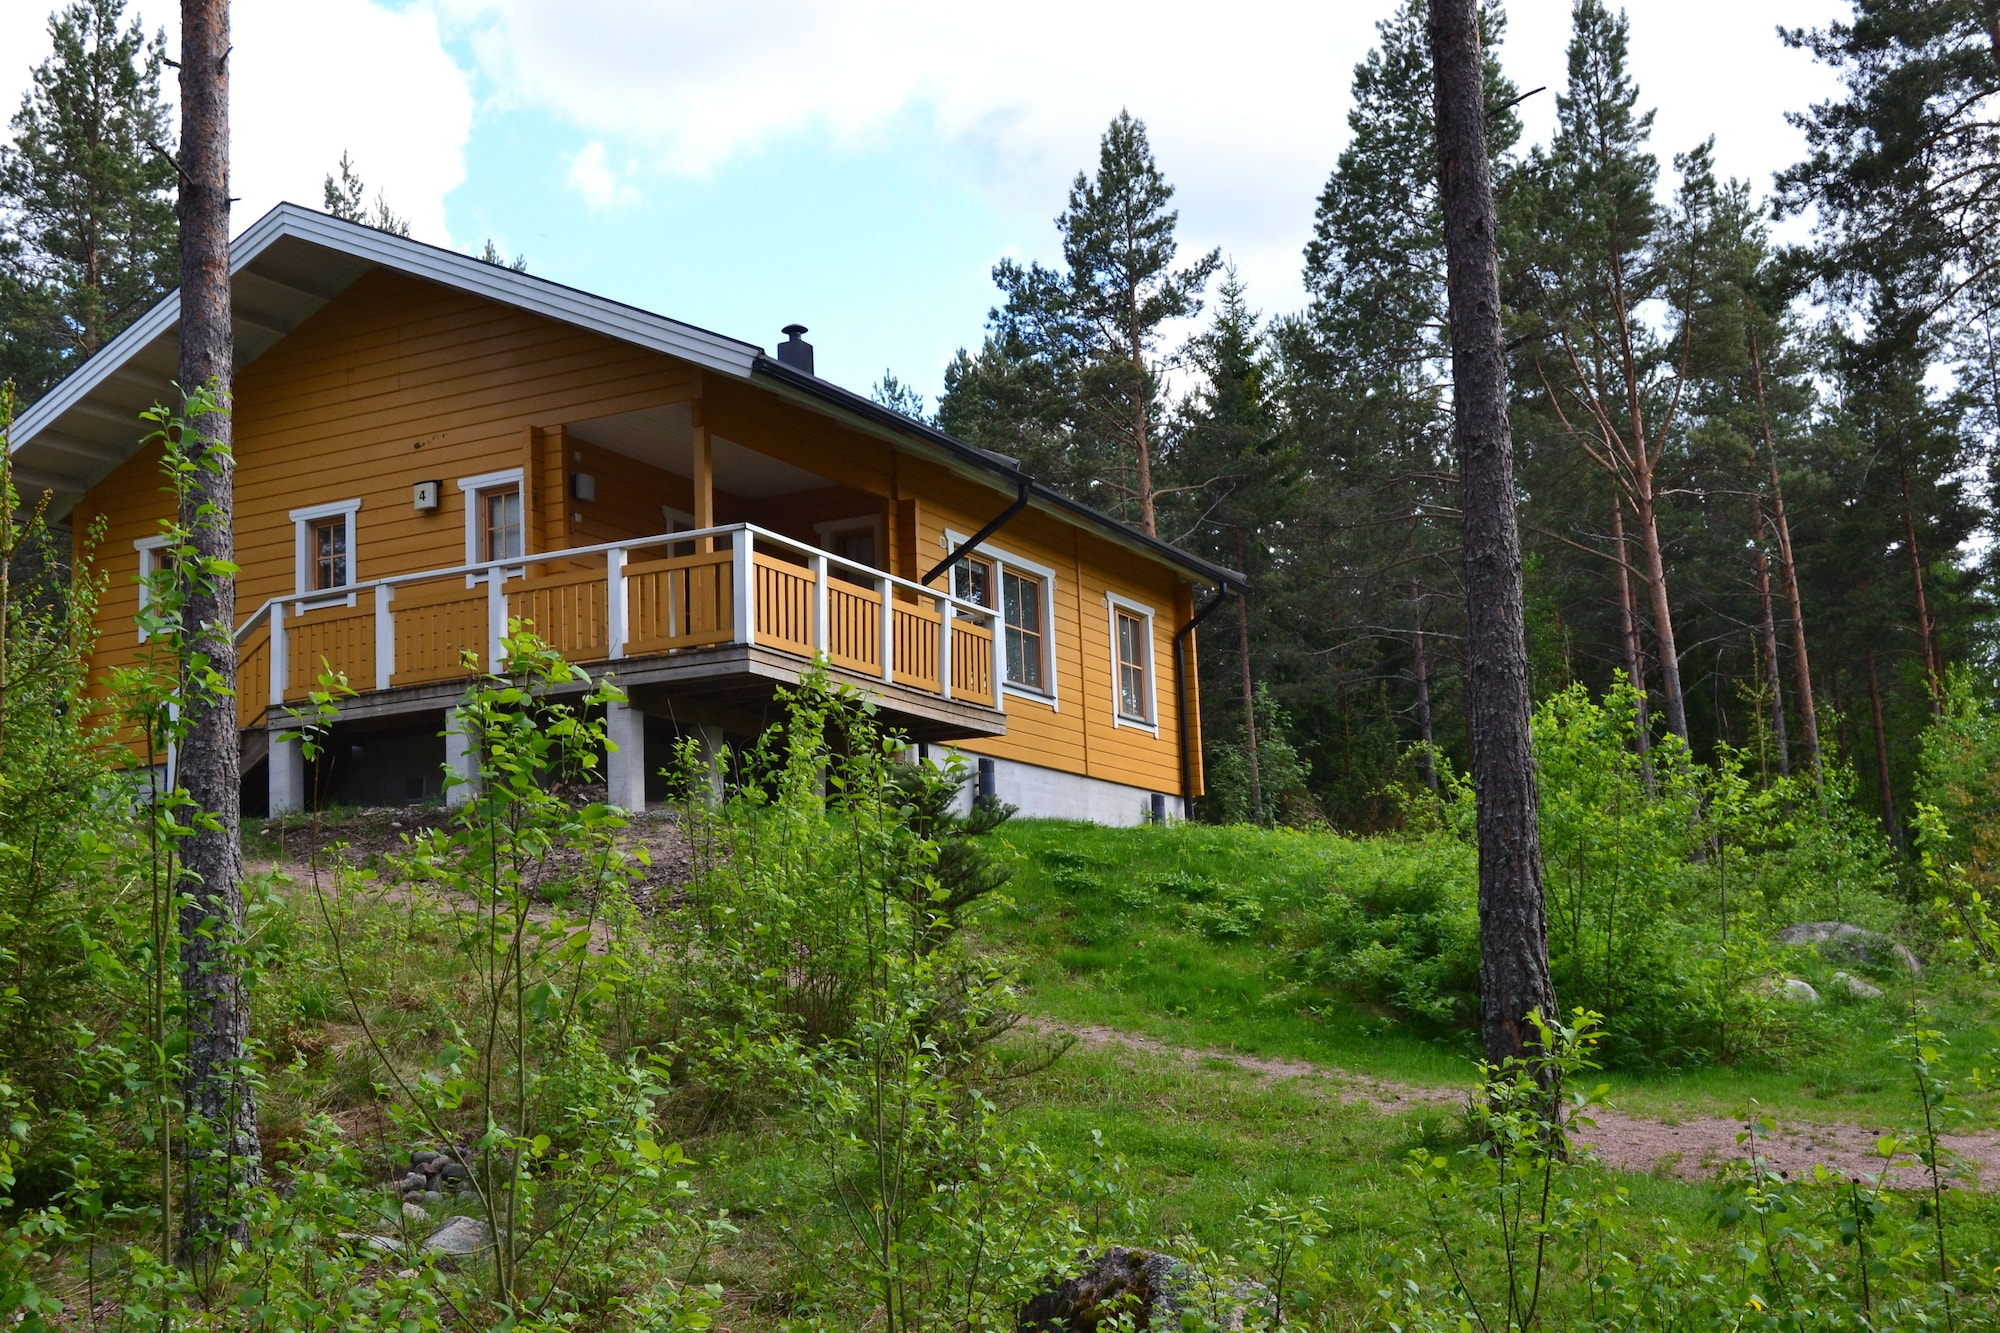 Matilda VIP Cottages, Finland Proper